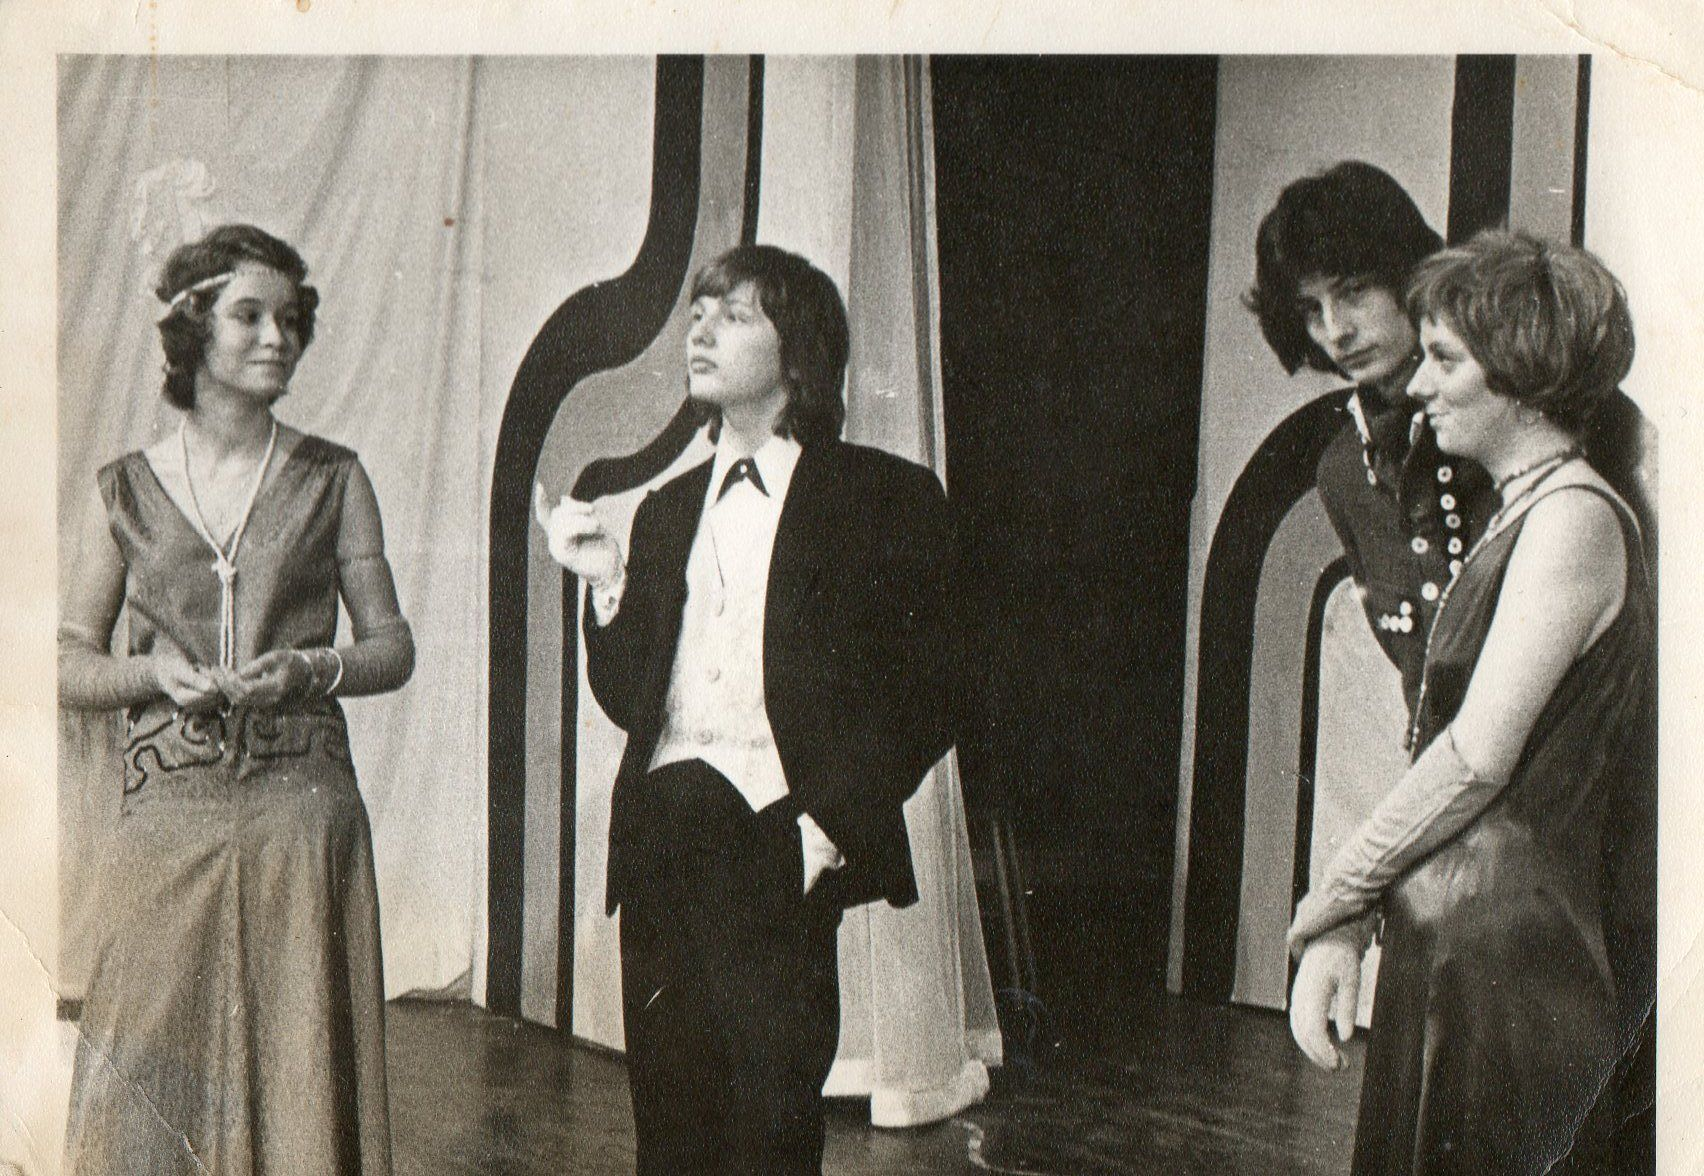 Lidbury centre picture: Type cast? as a homosexual character in a school play 1976 in a 1930' rendition of 'As you like it'